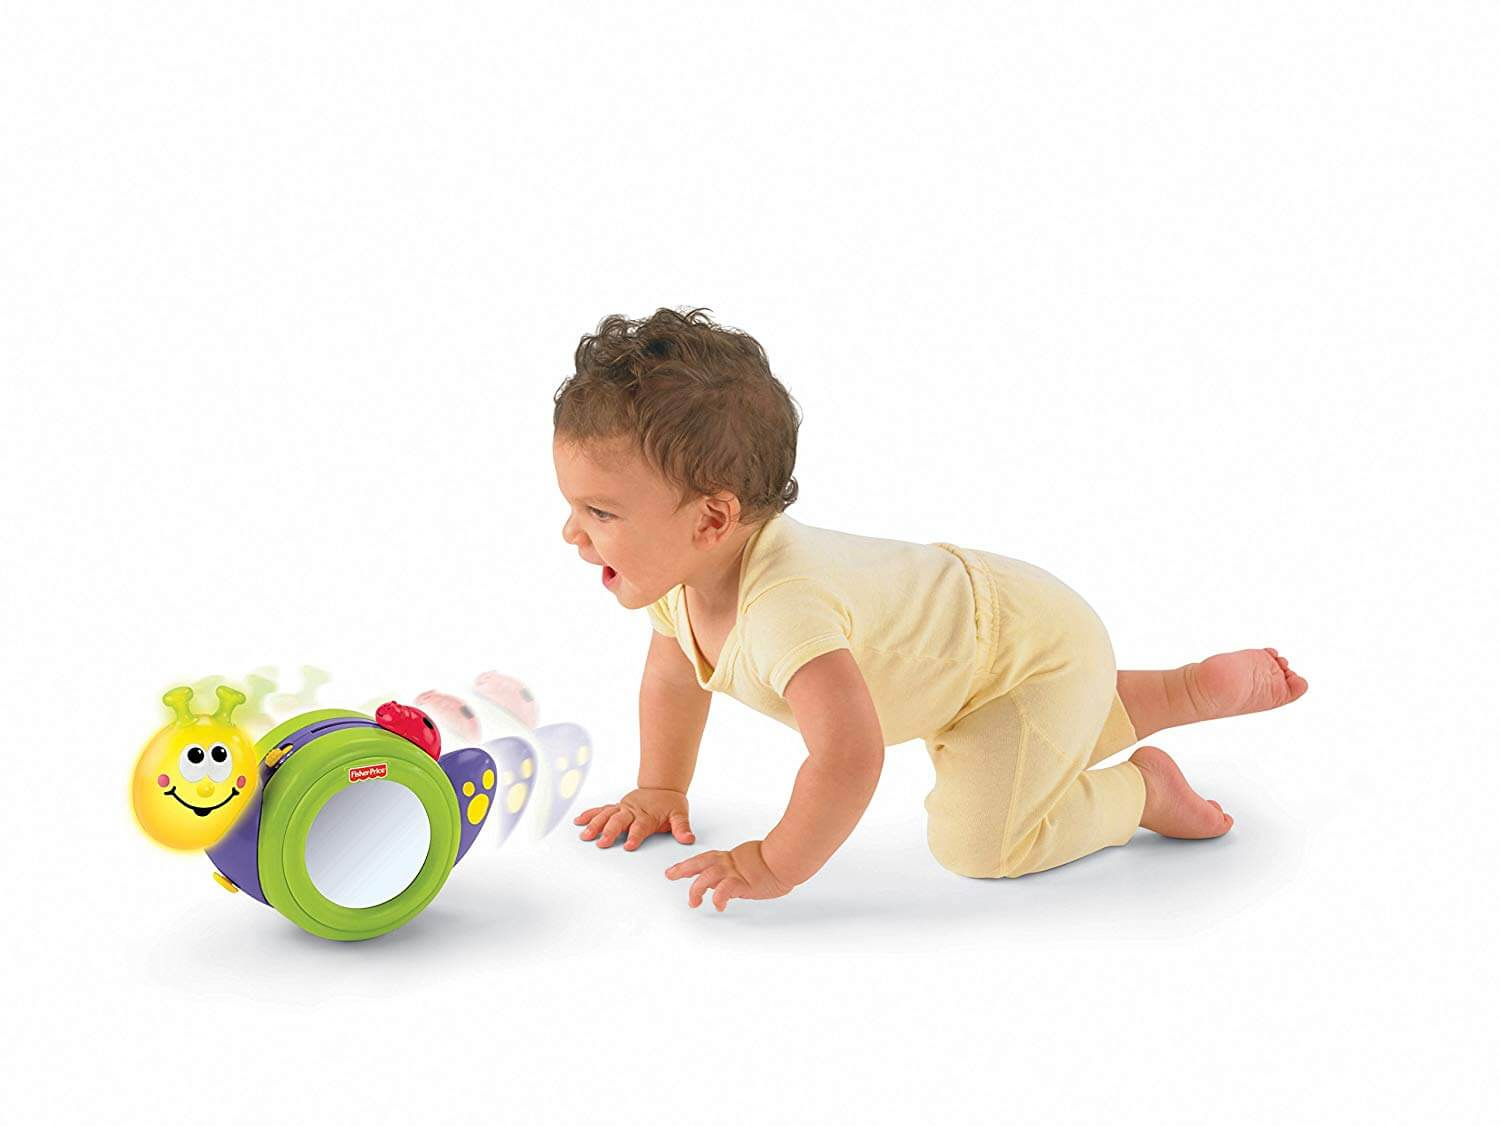 baby learning to crawl